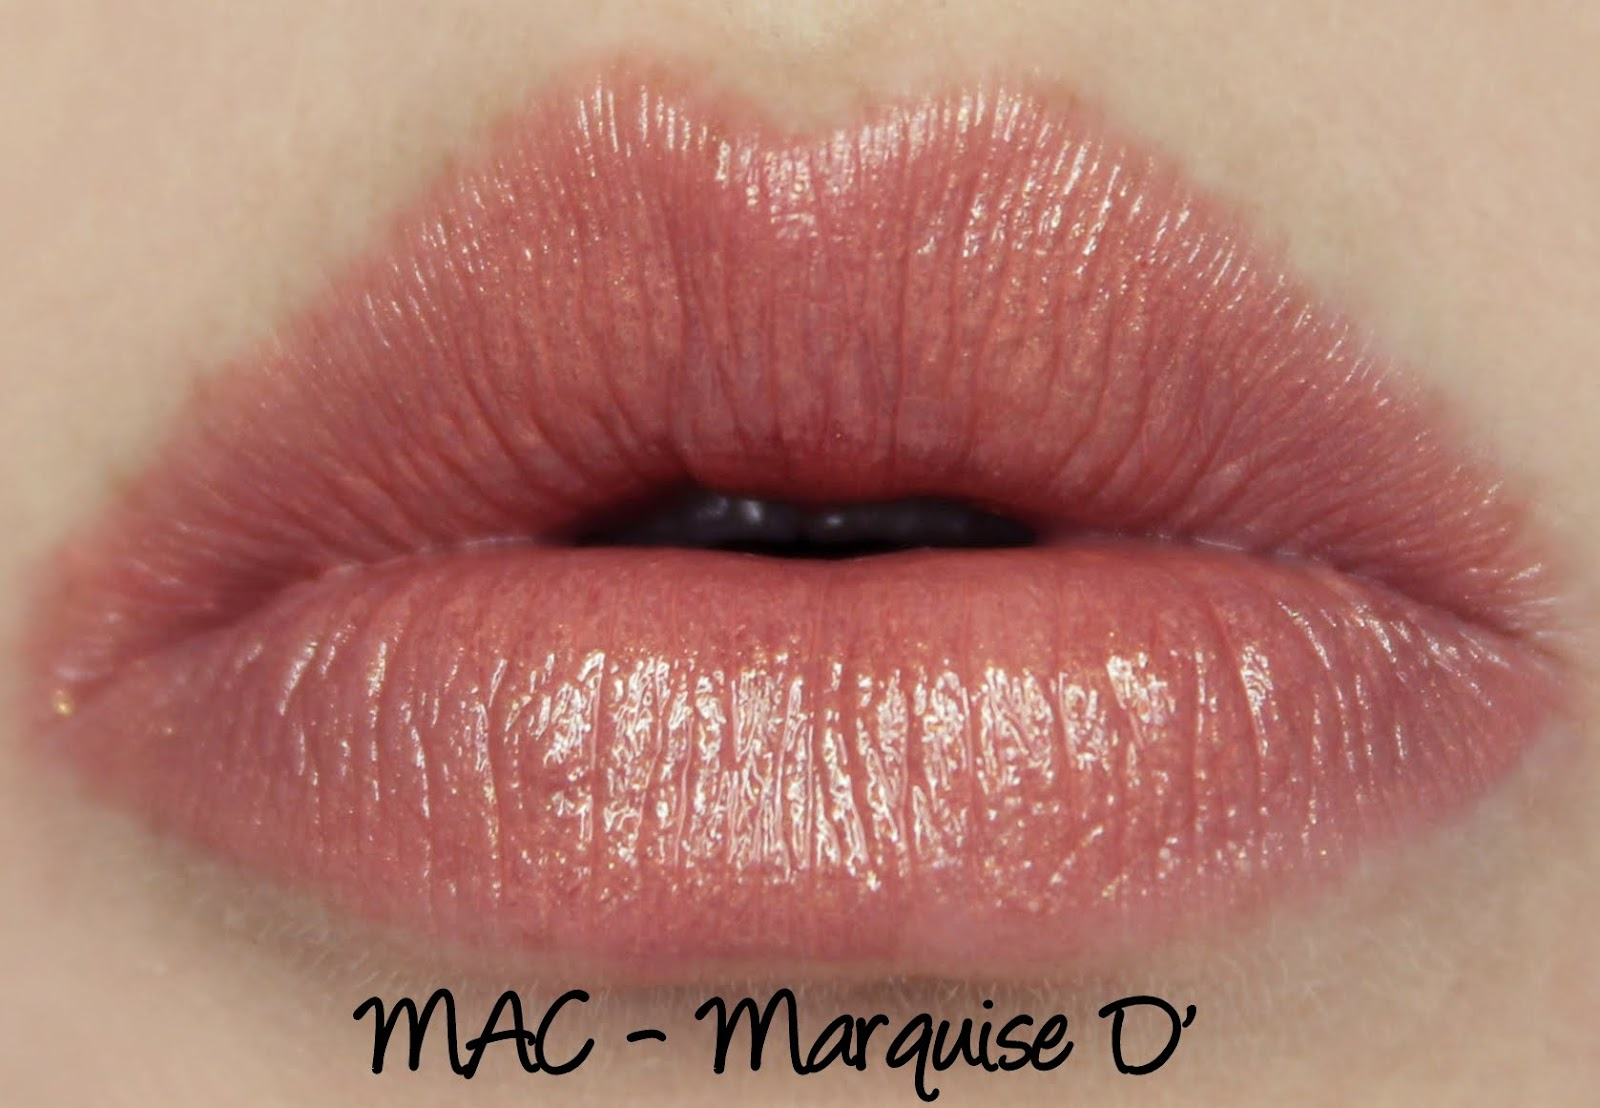 MAC Monday: Wonder Woman - Marquise D' Lipstick Swatches & Review